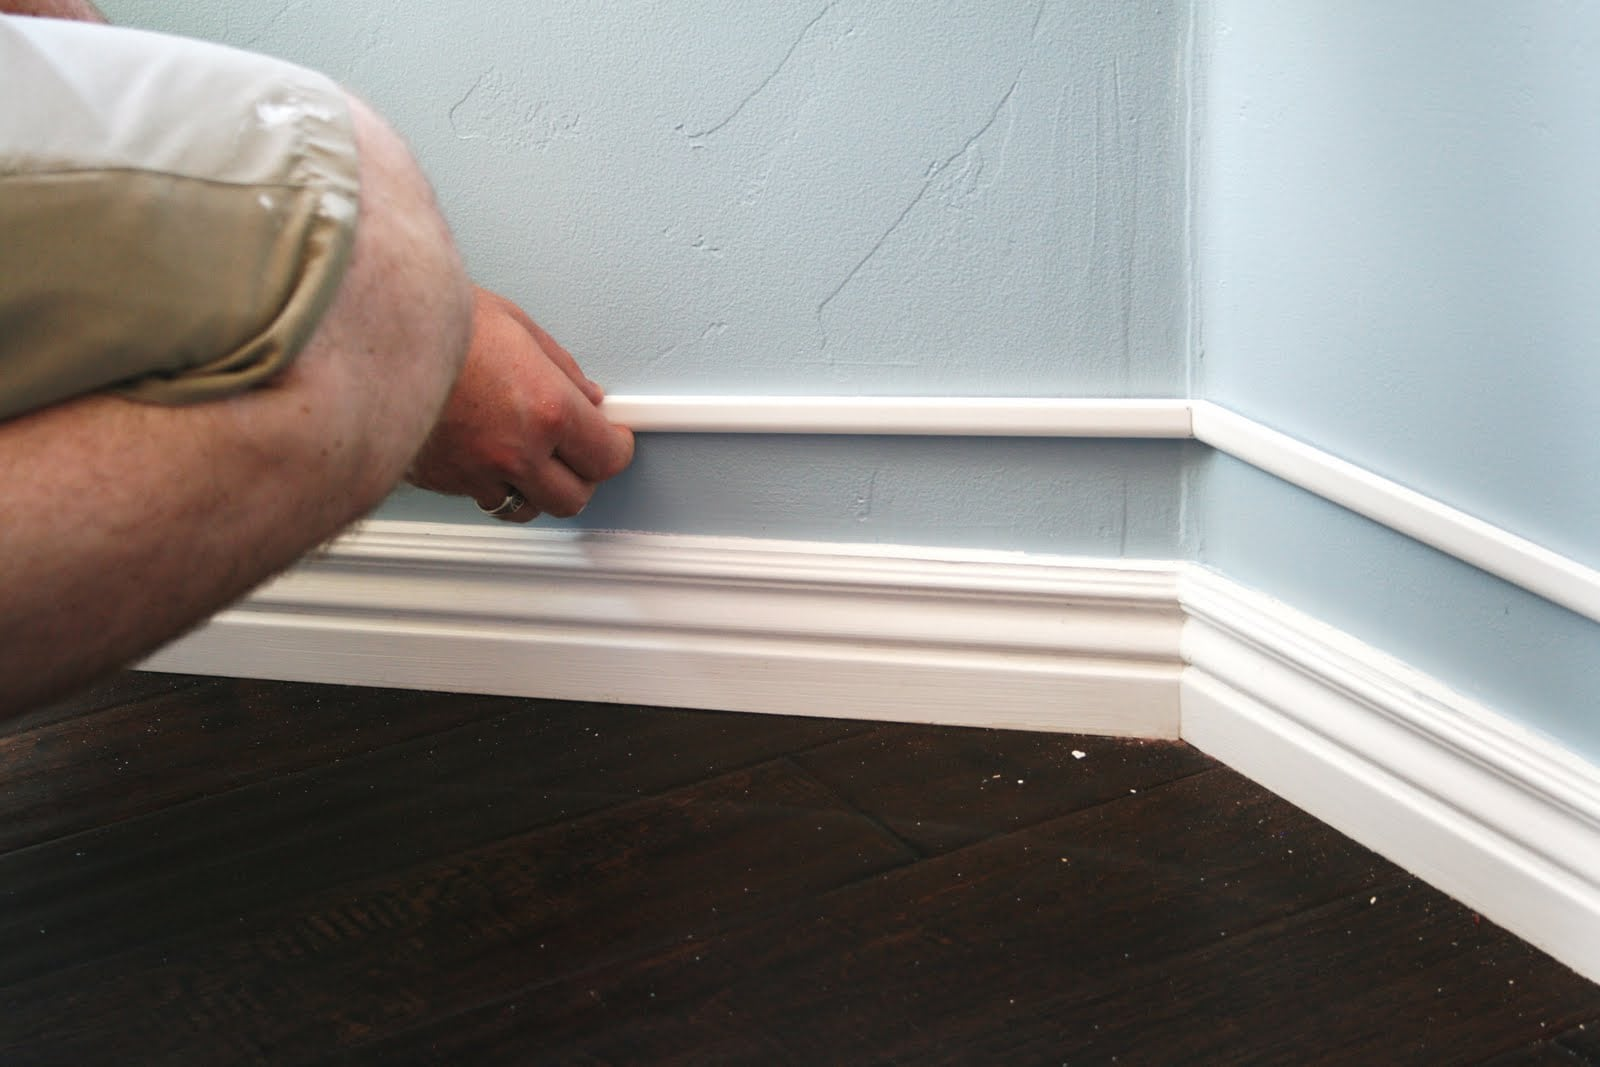 Get inspired 10 minor home upgrade ideas how to nest Baseboard height